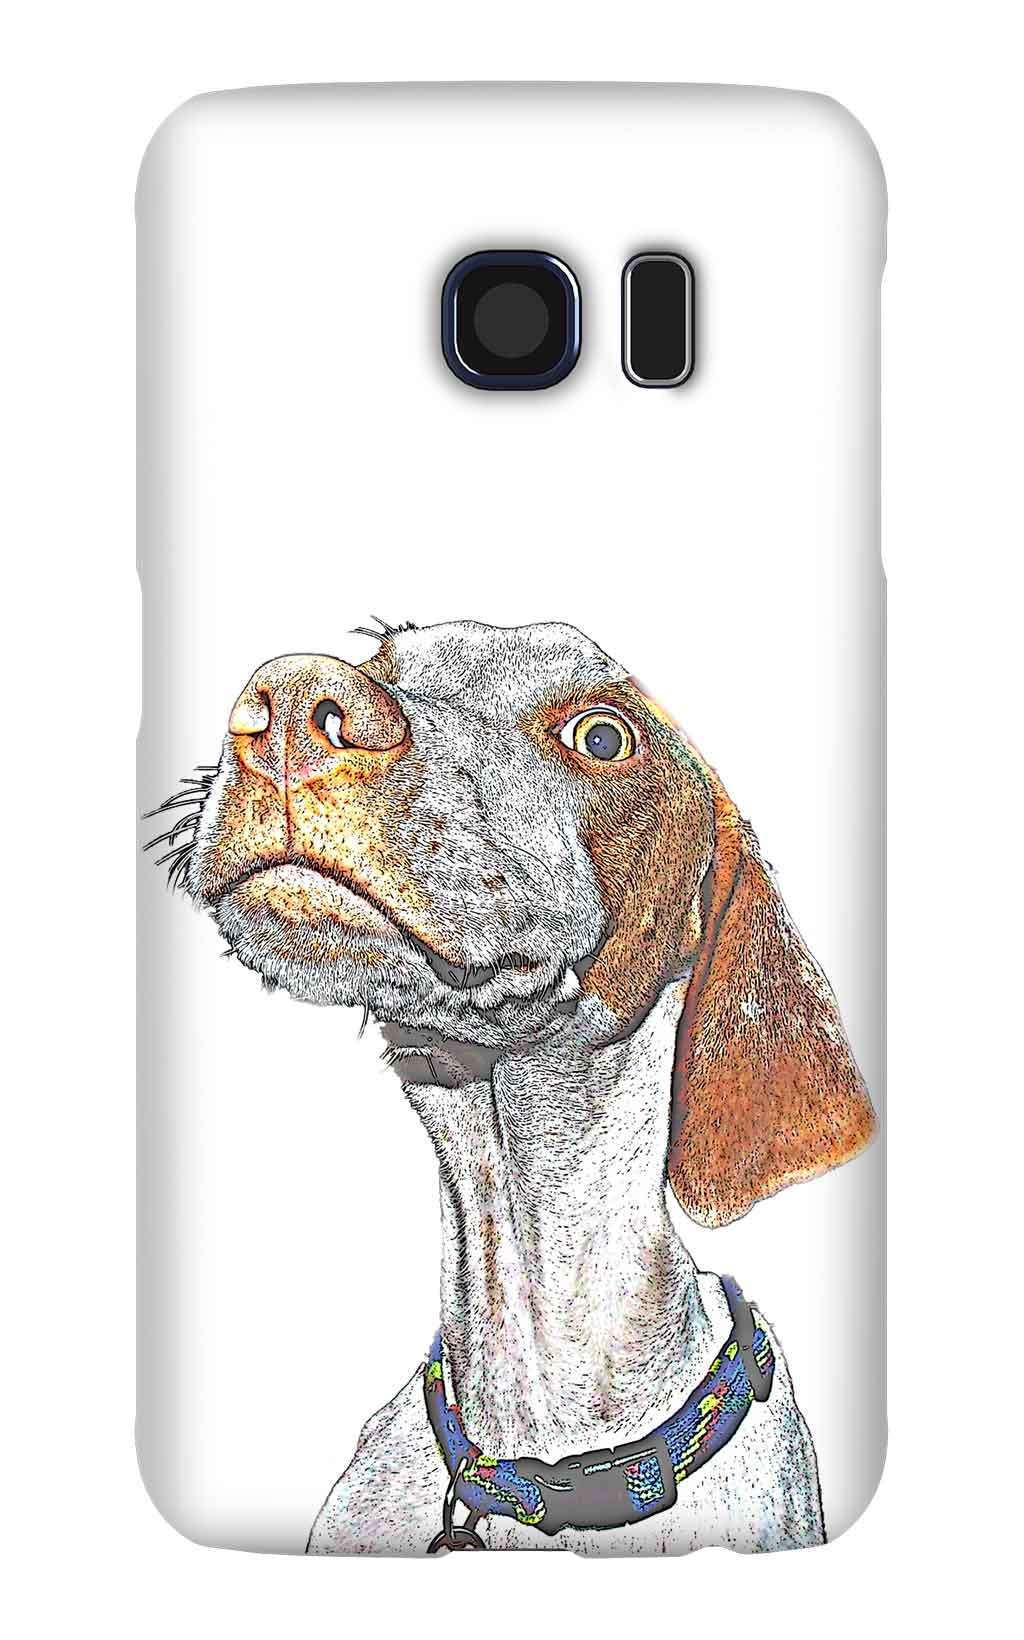 Product, Cellphone Case: Mr. Bo Bo – White English pointer with blue collar